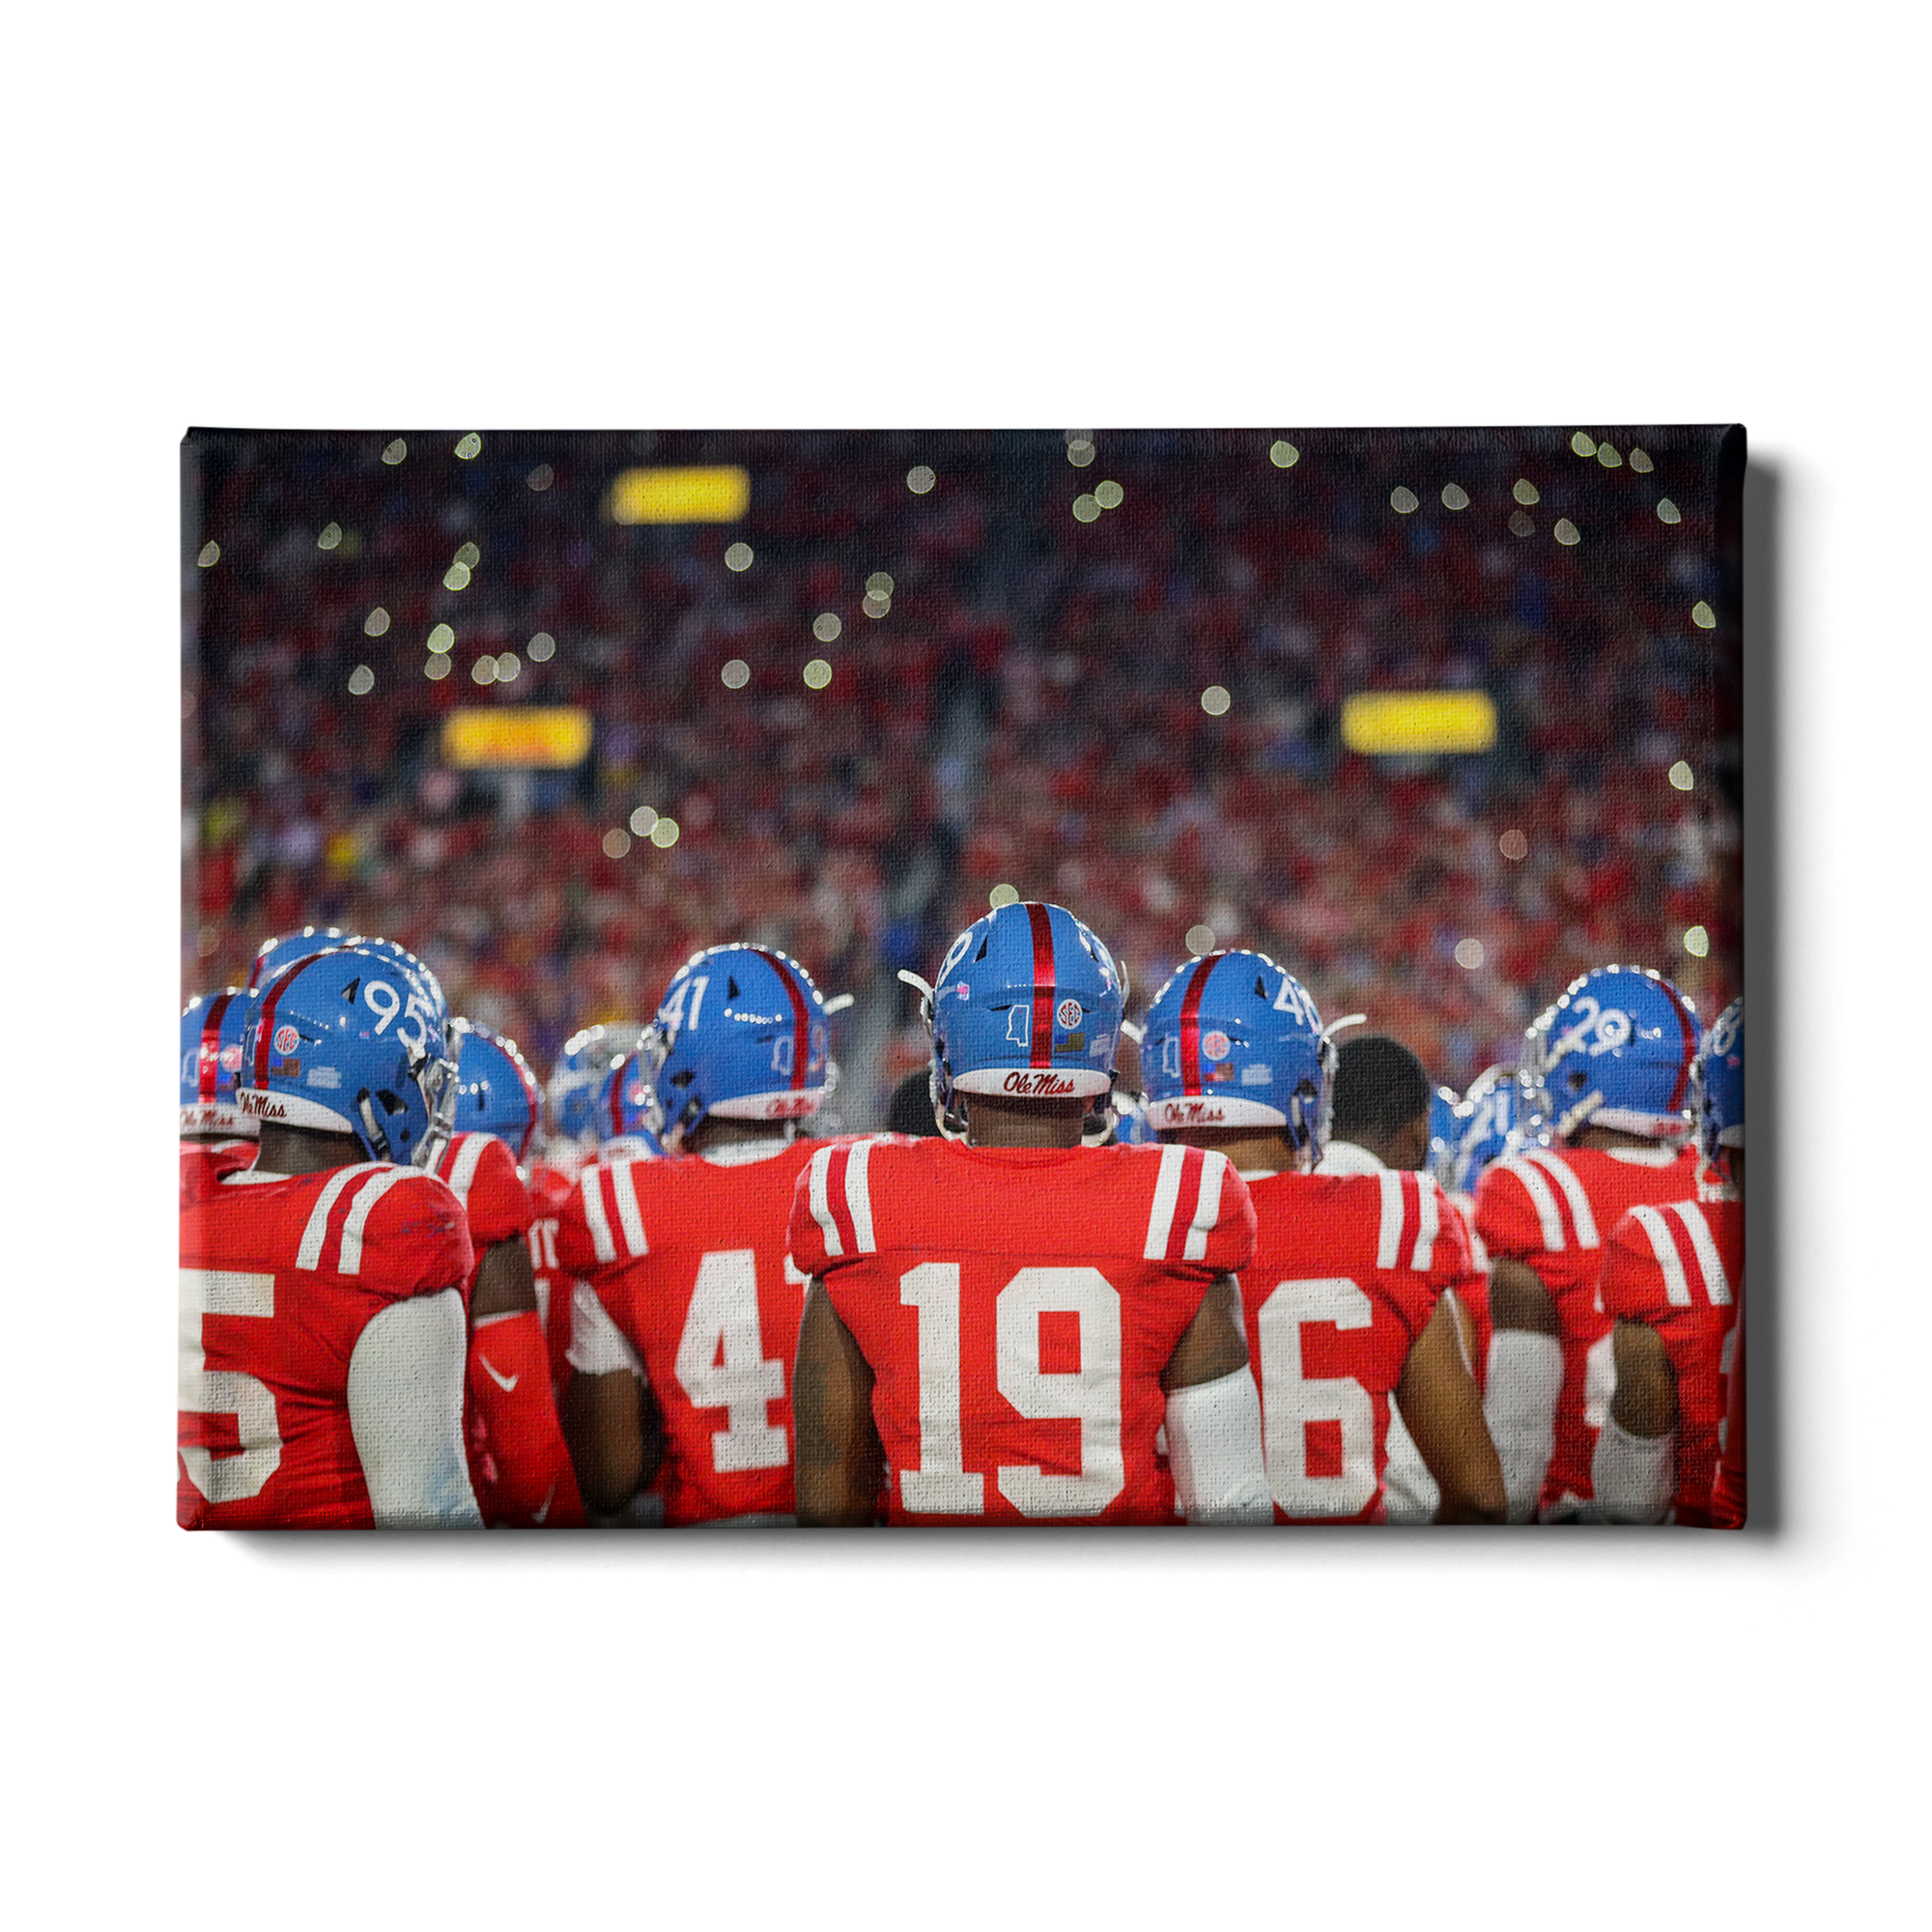 Ole Miss Rebels - Retro Team - College Wall Art #Canvas